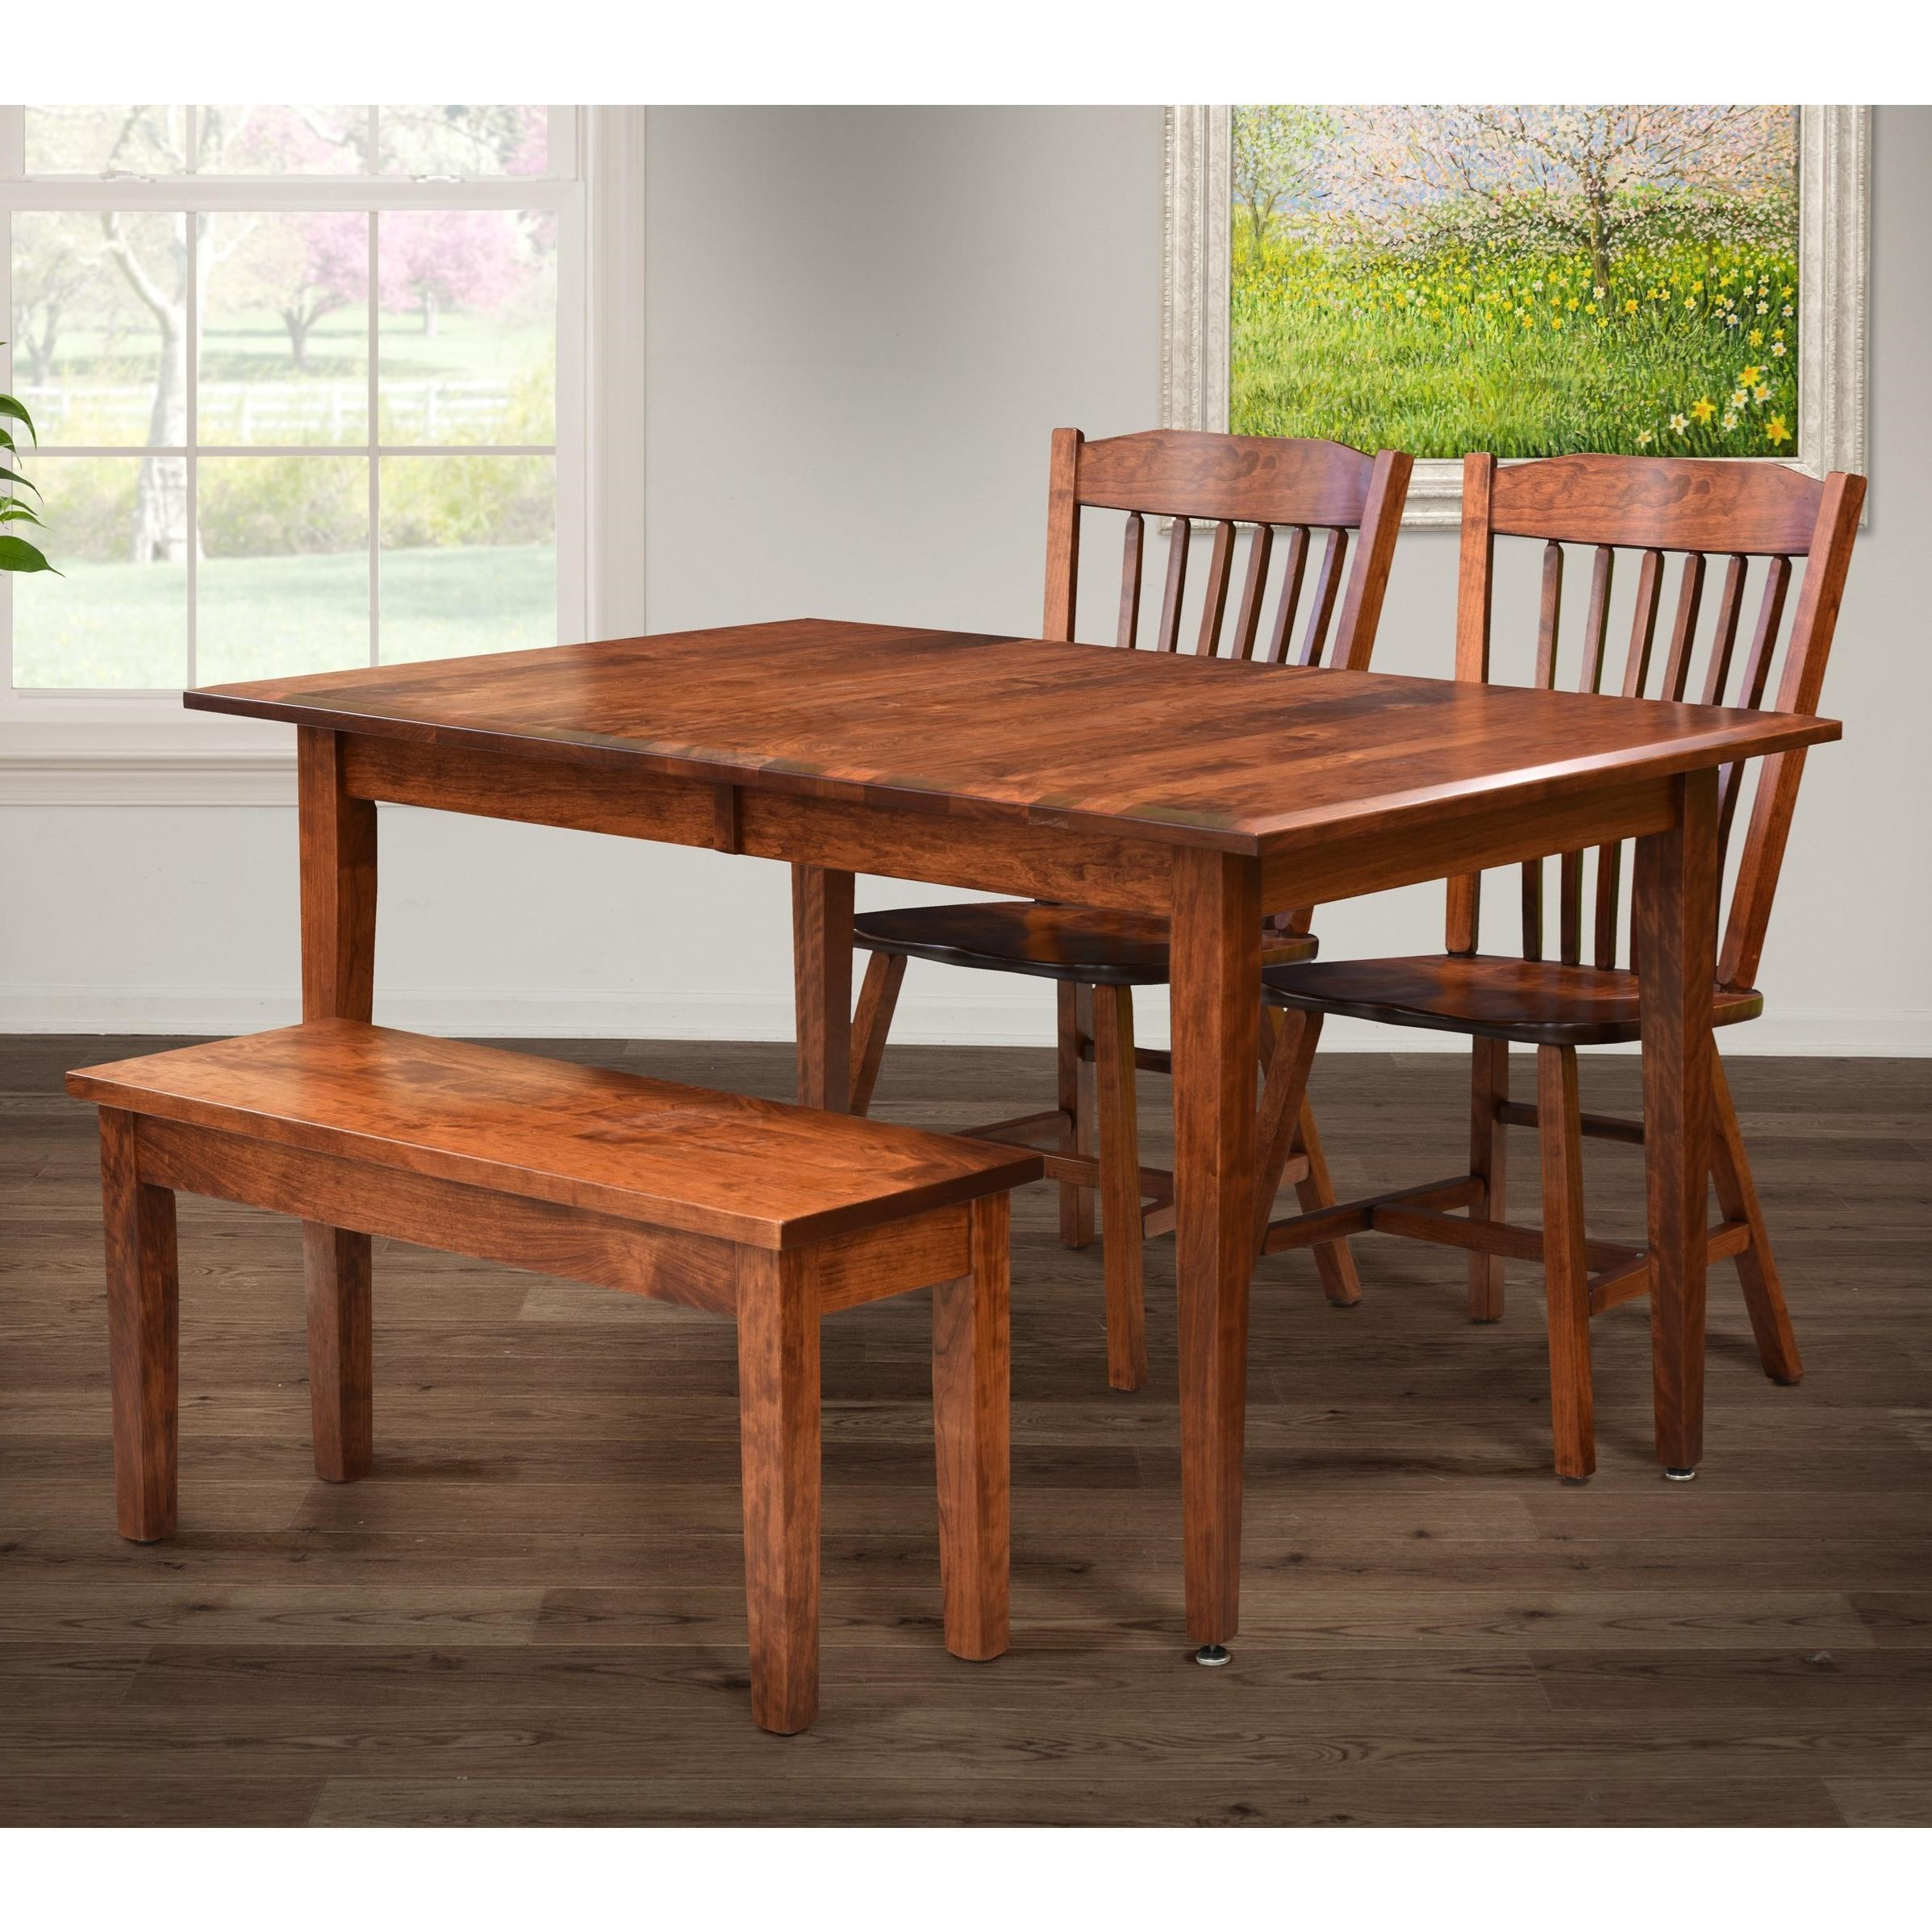 Santa Monica Table and Chair Set with Bench by Trailway Wood at Lucas Furniture & Mattress